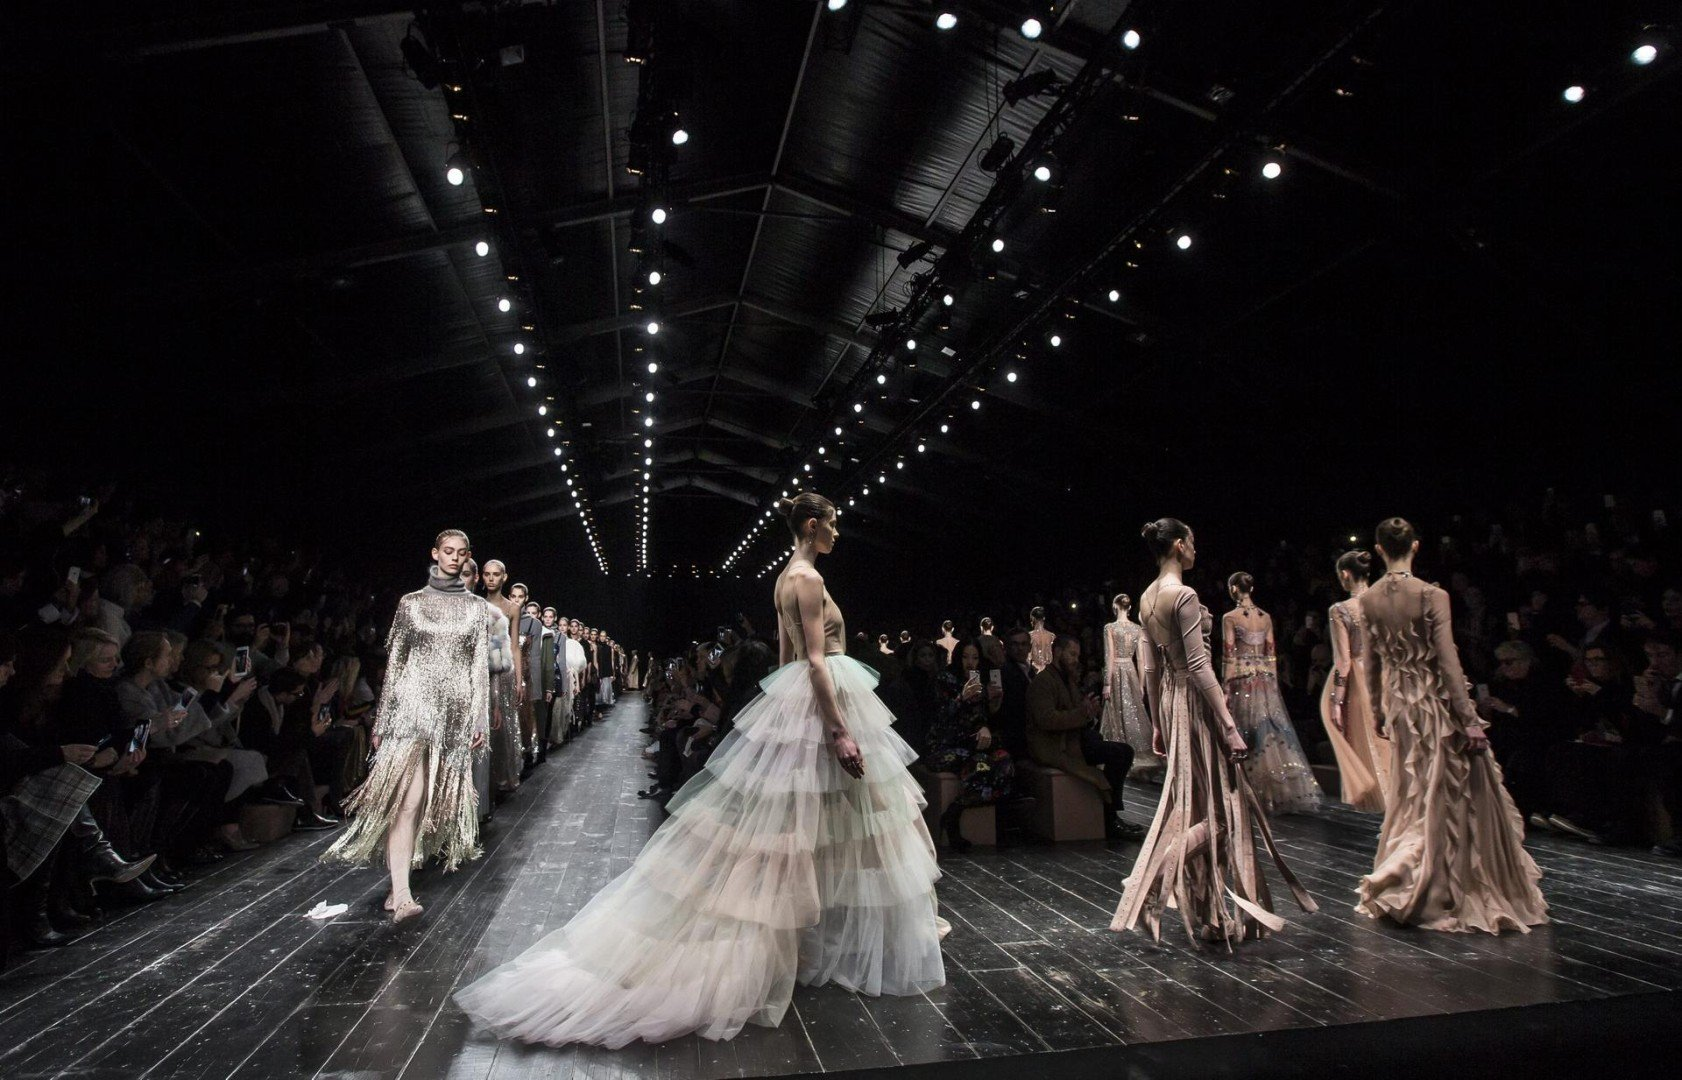 Autumn-winter 2016 fashion: dramatic collections, tame shows